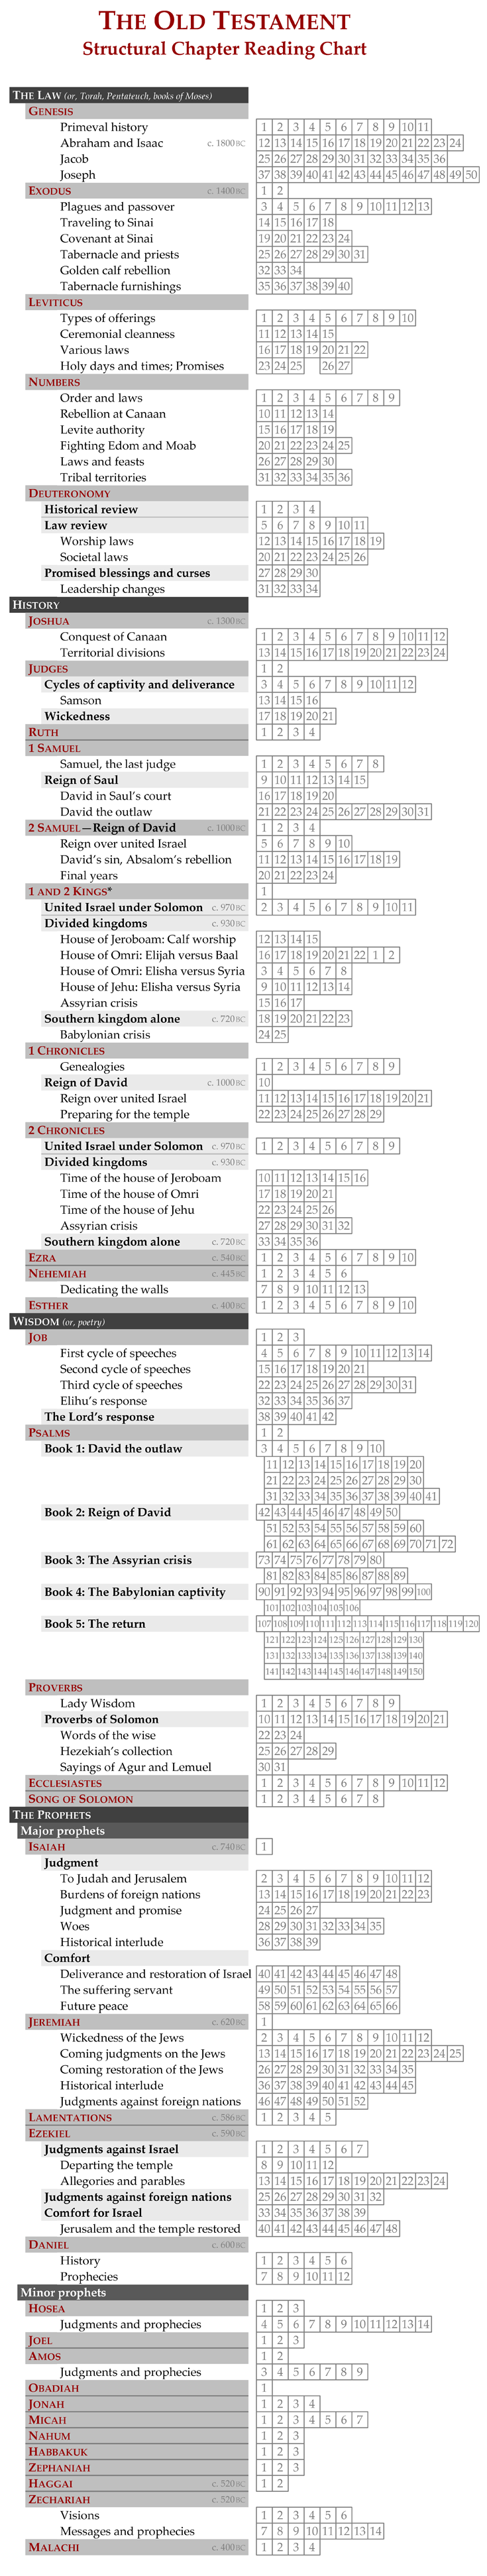 Pin by monica ann on just me pinterest alt bible and bible old testament structural chapter reading chart nvjuhfo Choice Image